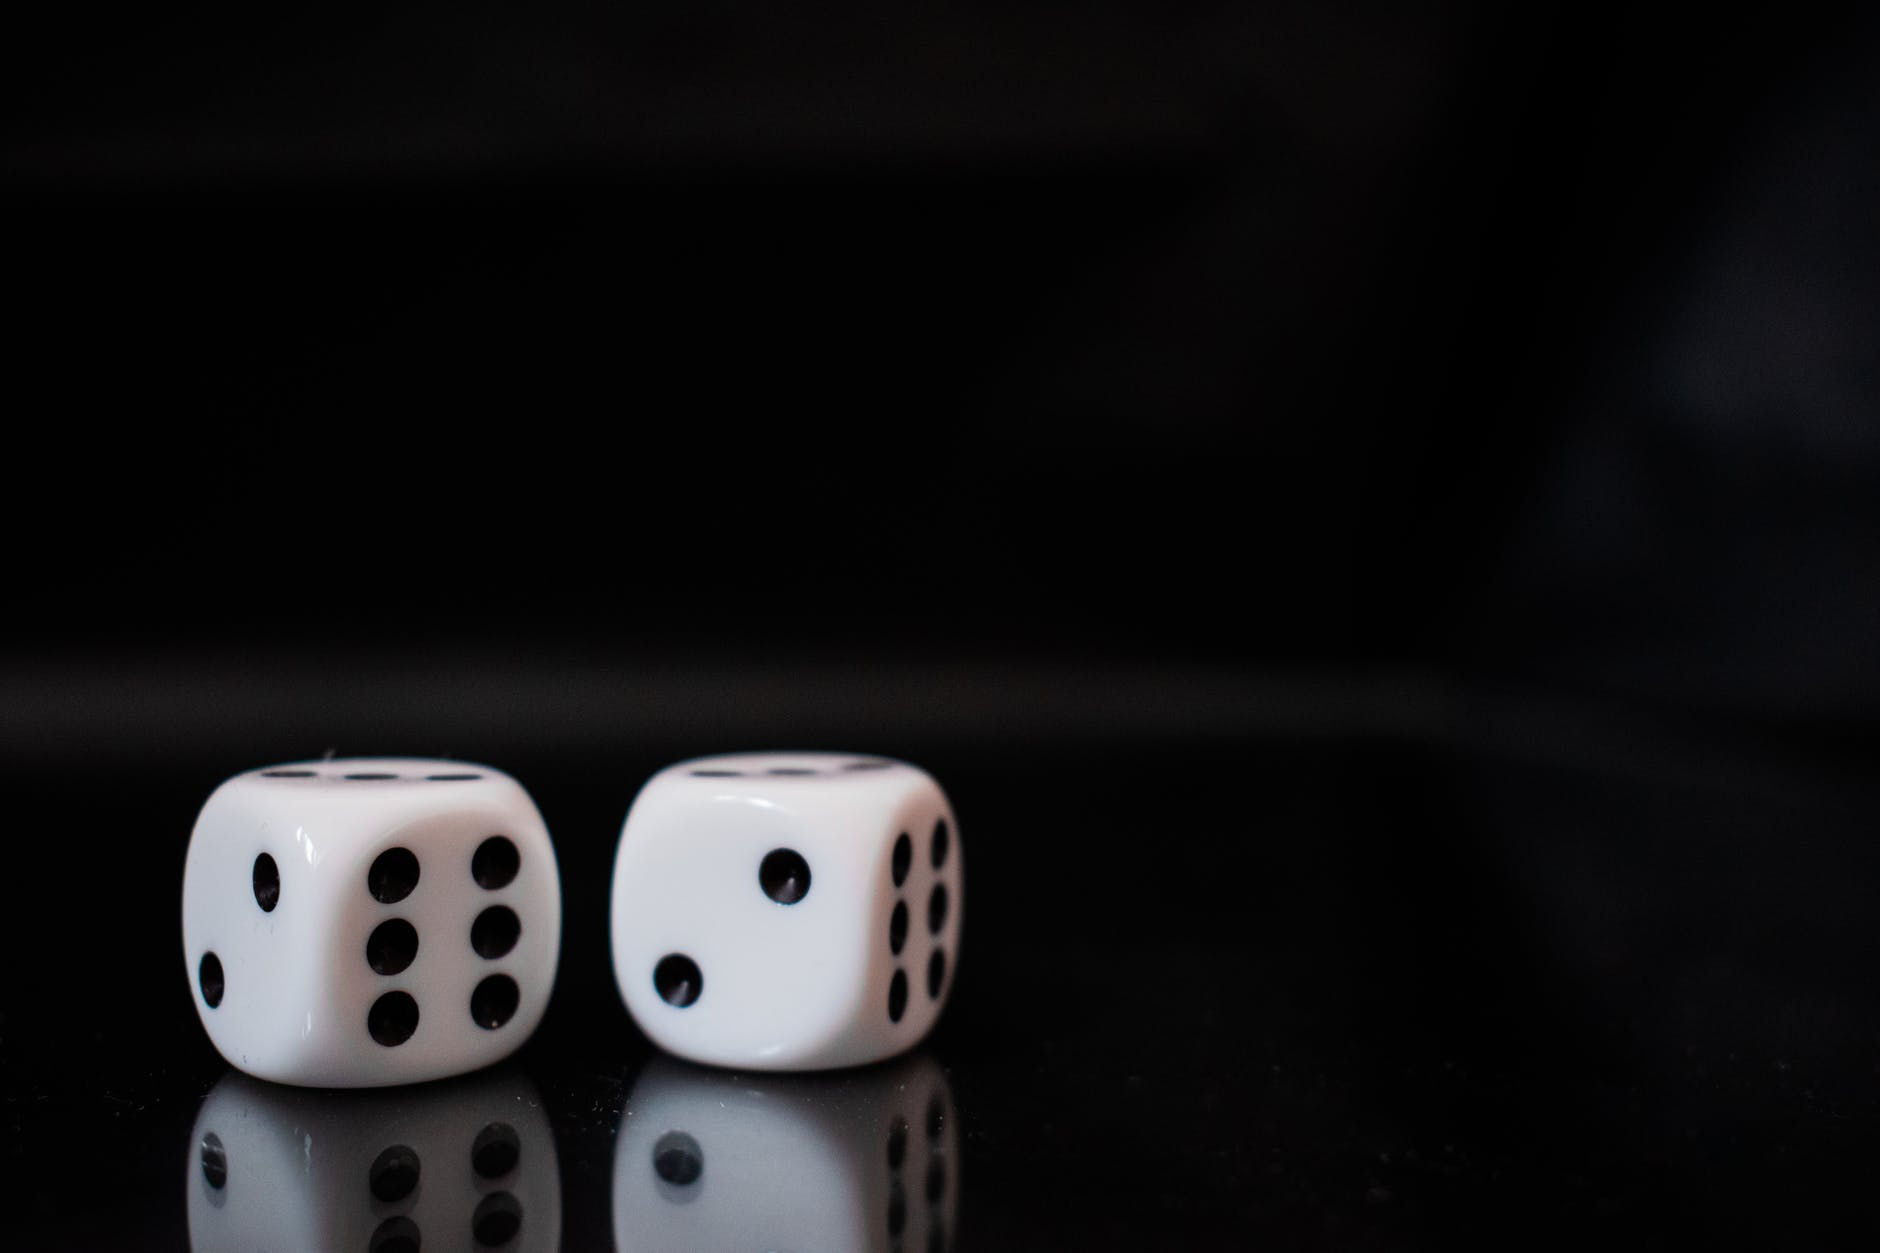 close up view of two white dices on black surface